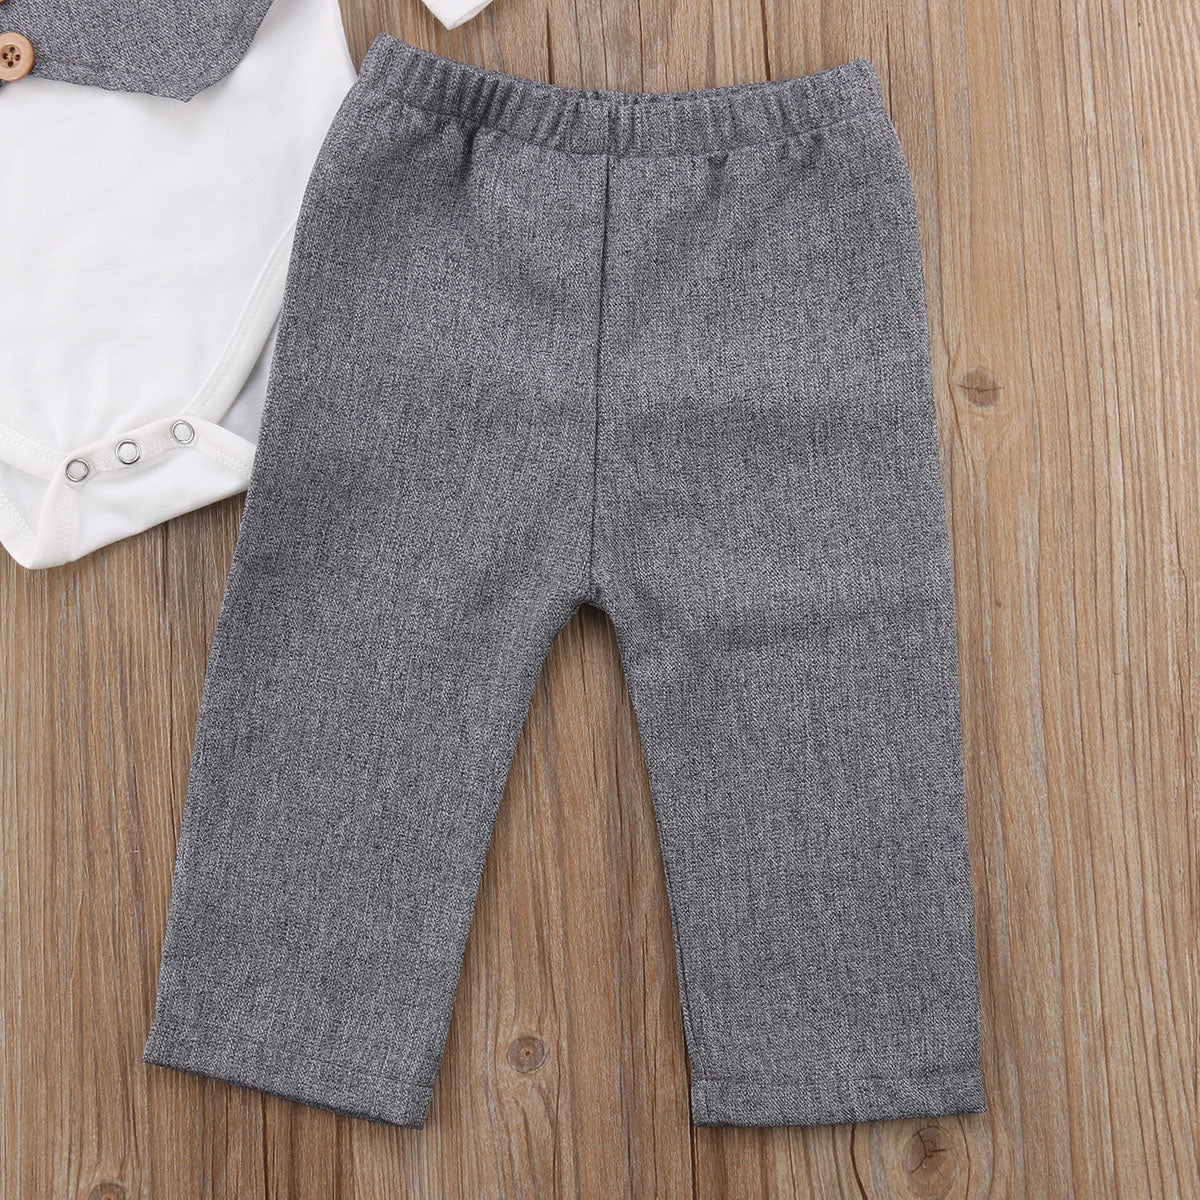 58a0e554f9871 ... Baby Boy Bow Tie Vest Shirt + Pants for Photos Clothing Set ...